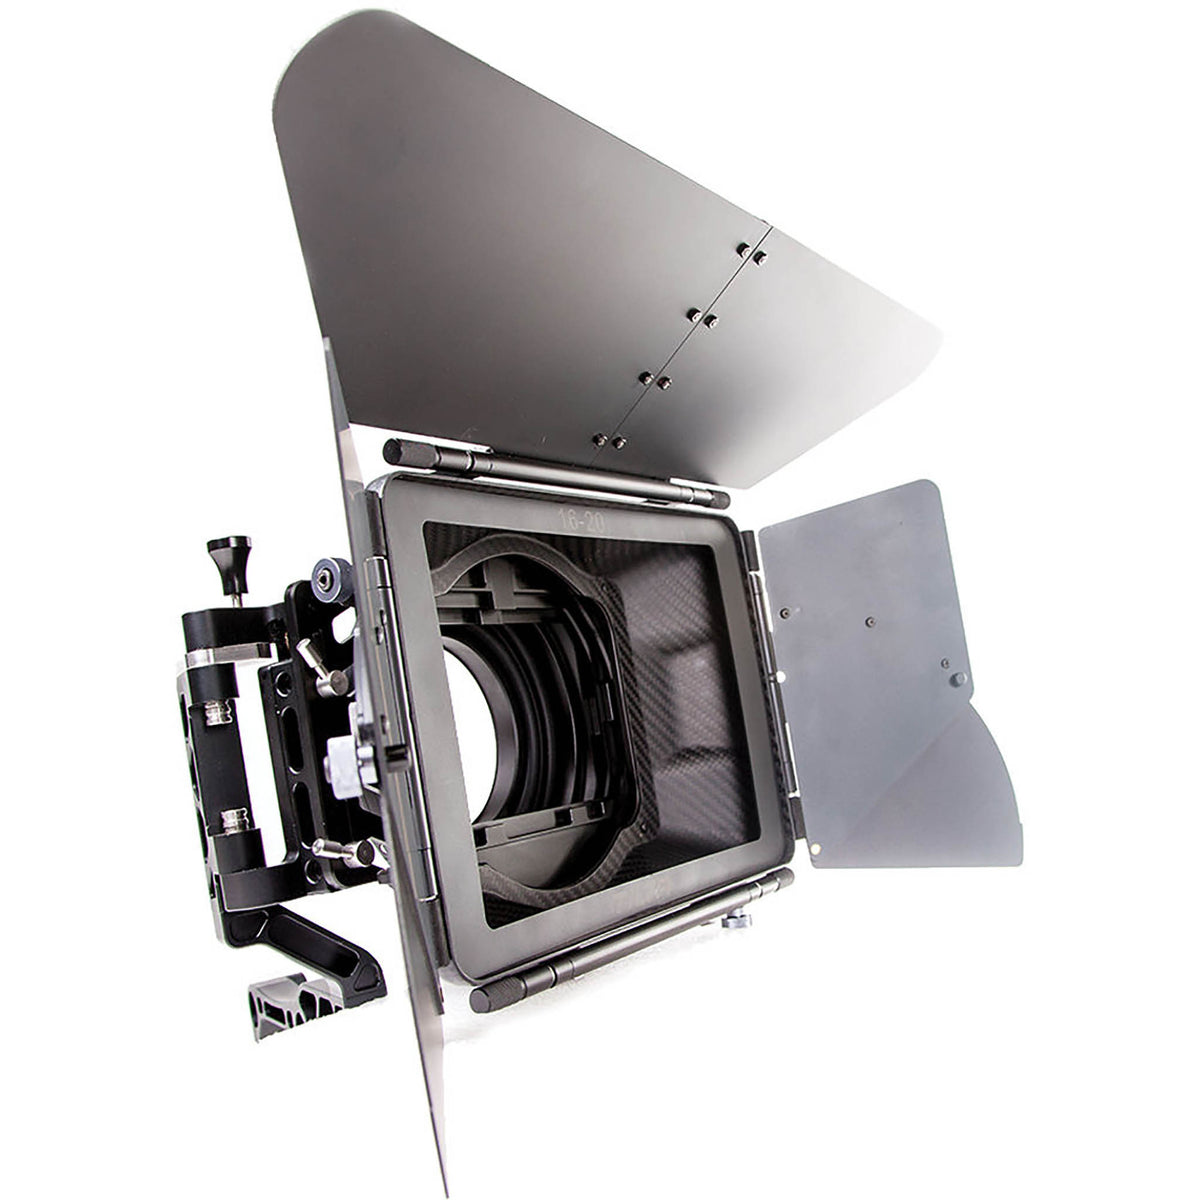 Tilta MB-T04 swing away matte box left